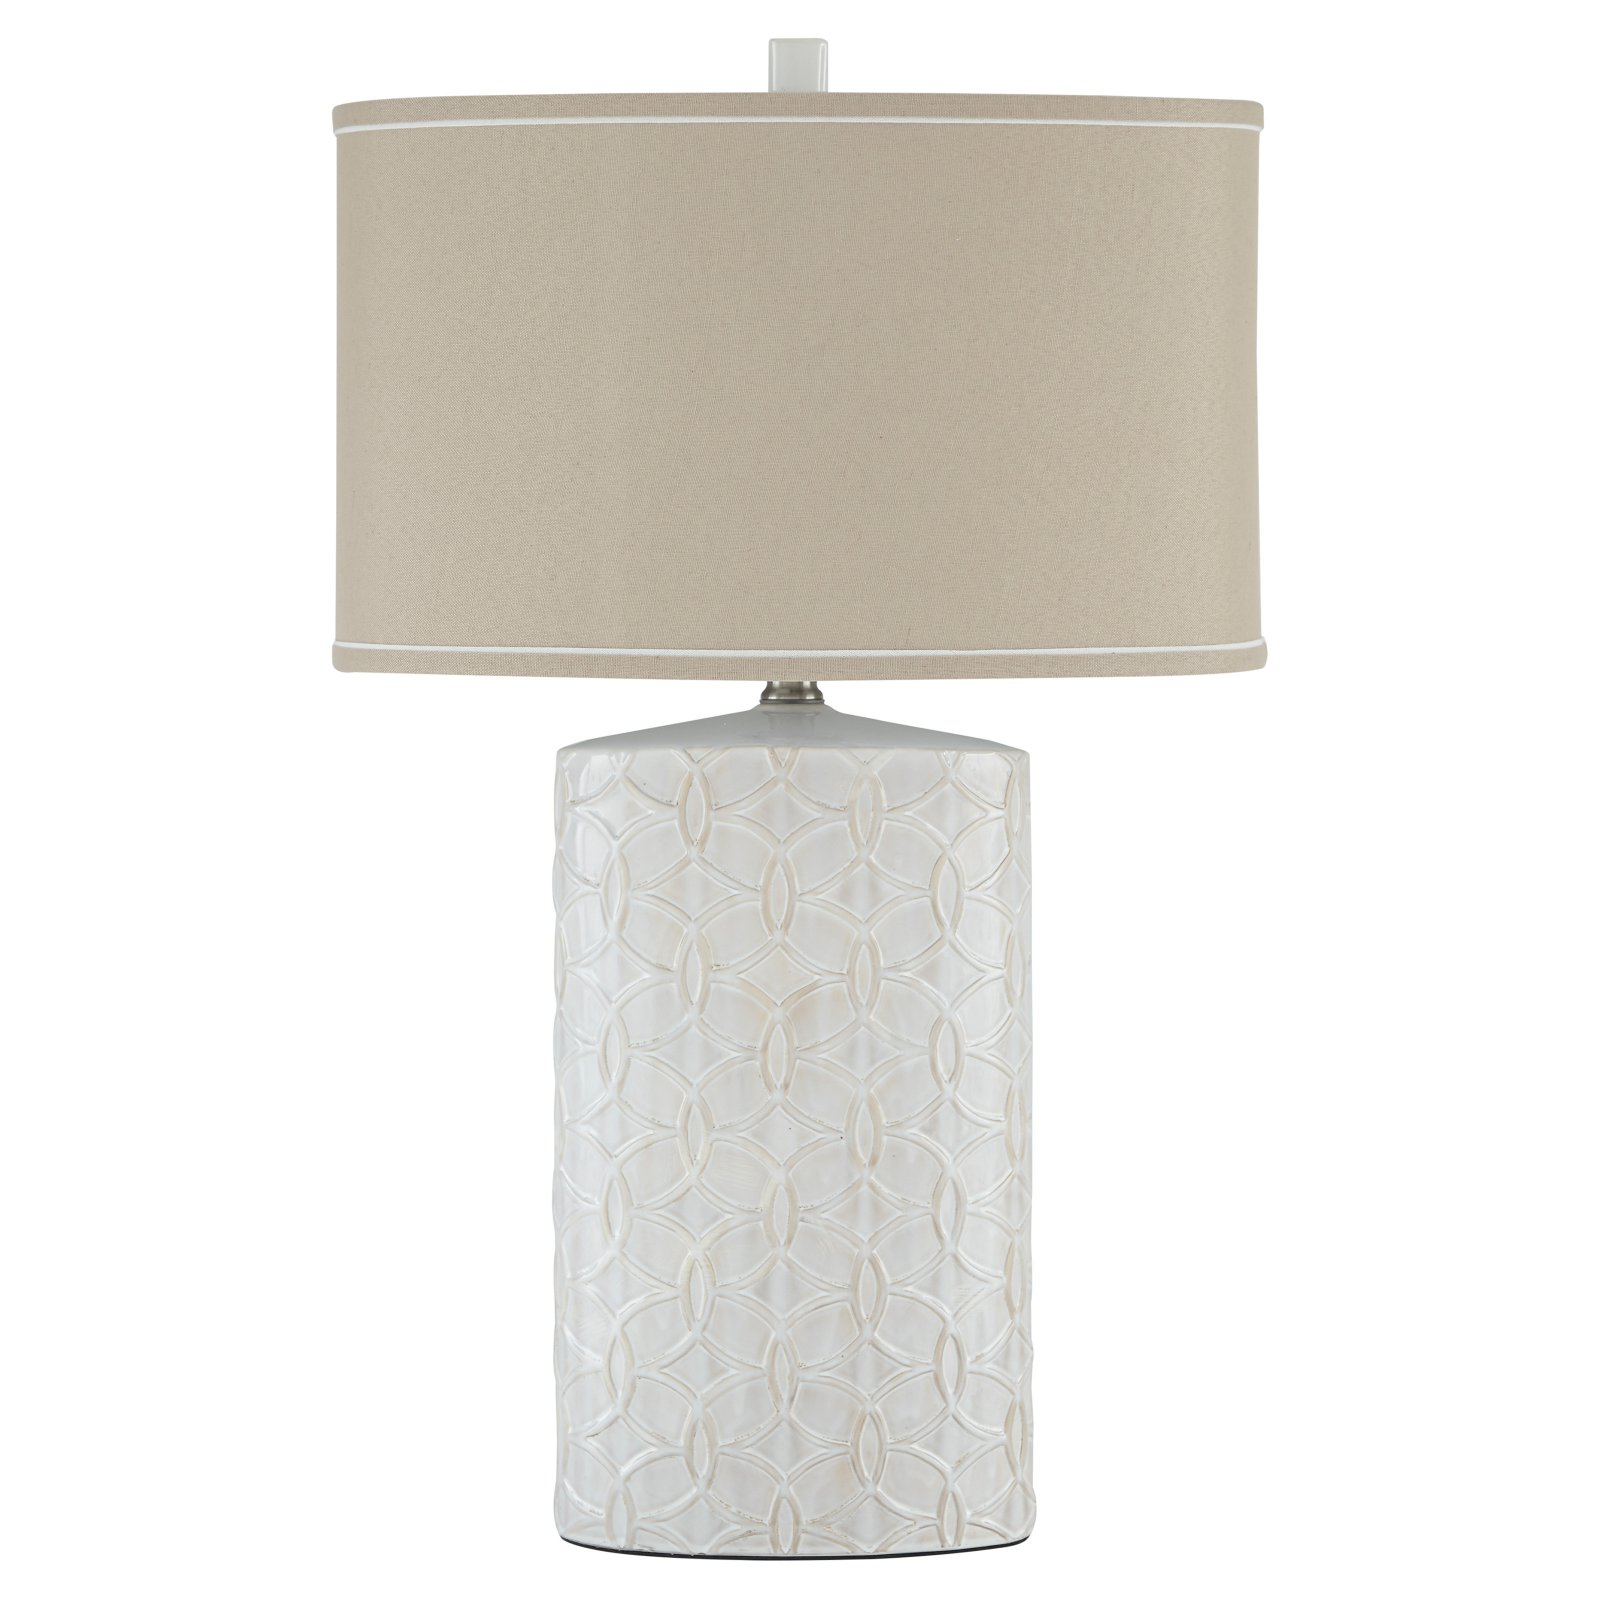 Signature Design by Ashley Shelvia L100374 Table Lamp by Ashley Furniture